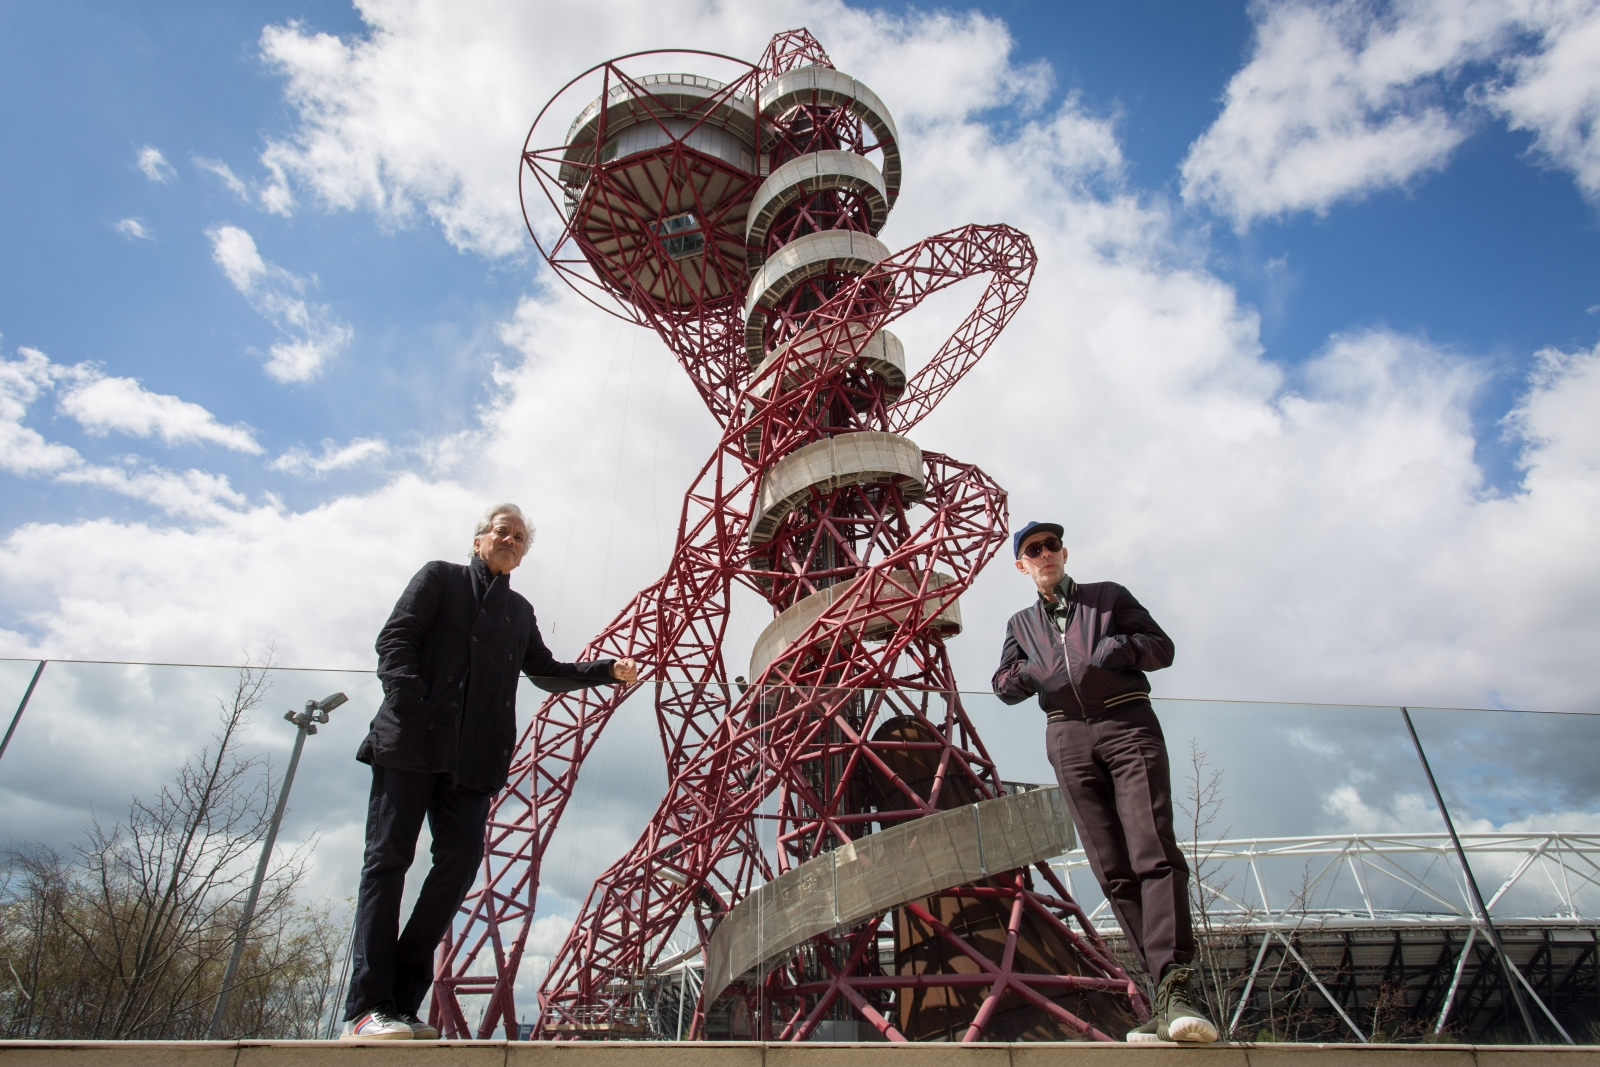 The Orbit tower's slide is fitted